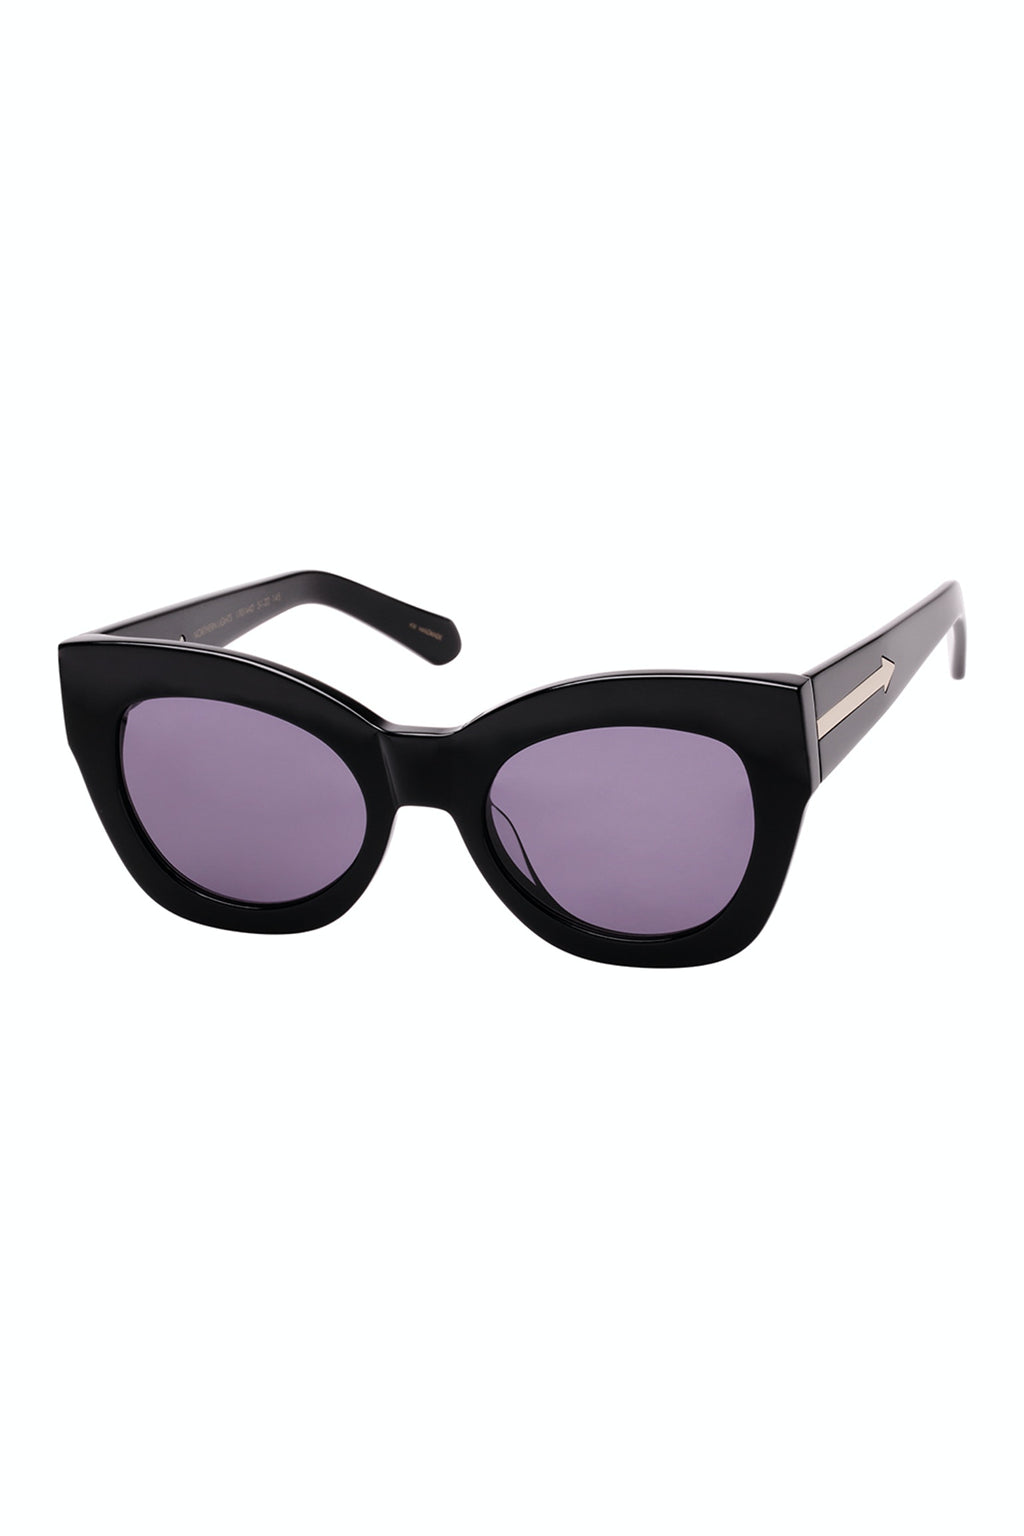 KAREN WALKER  //  Northern Lights BLACK